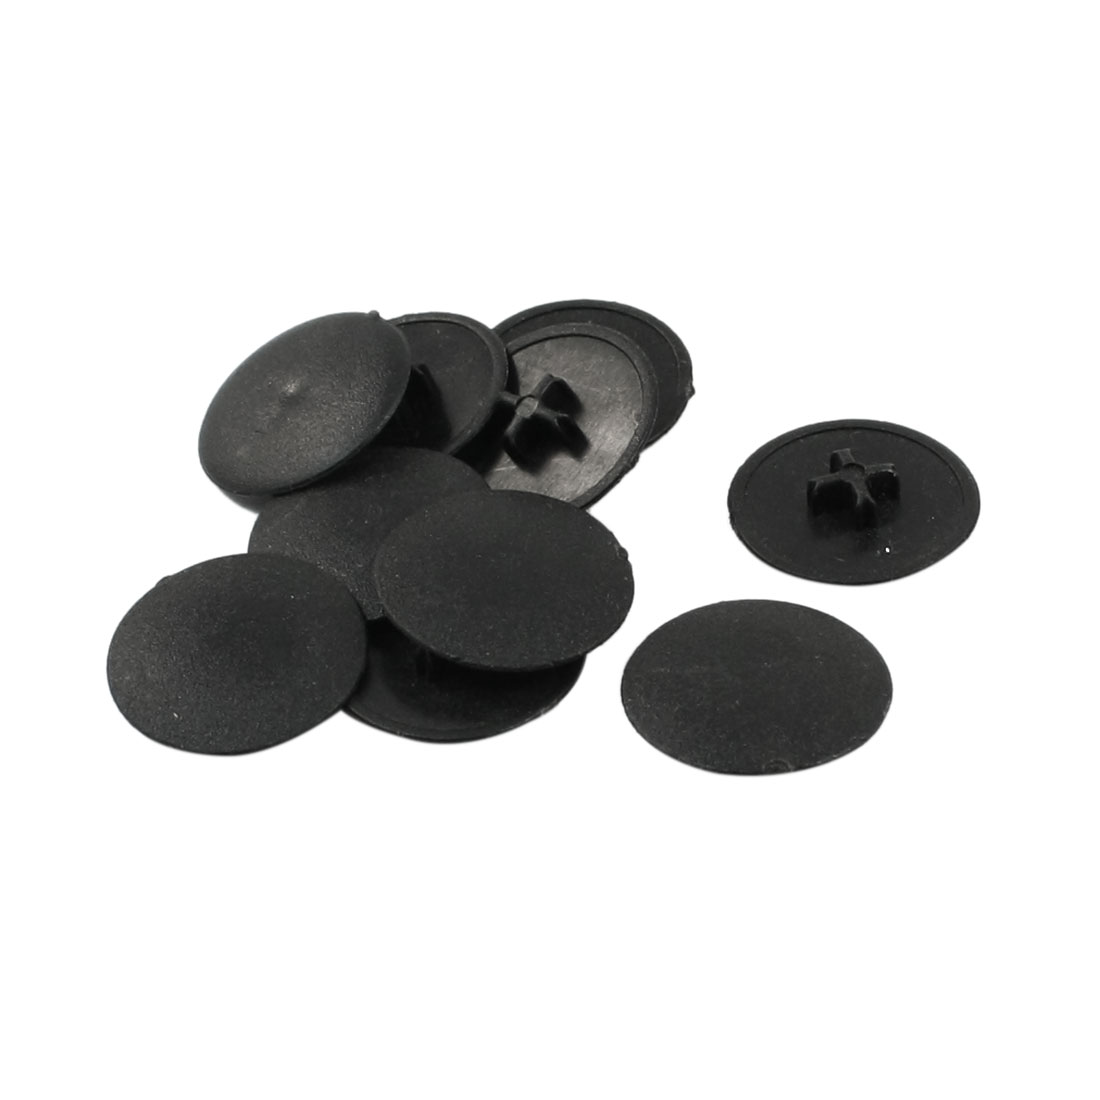 Home Chair Table 17mm Dia Plastic Cap Cover Round Insert Black 10pcs